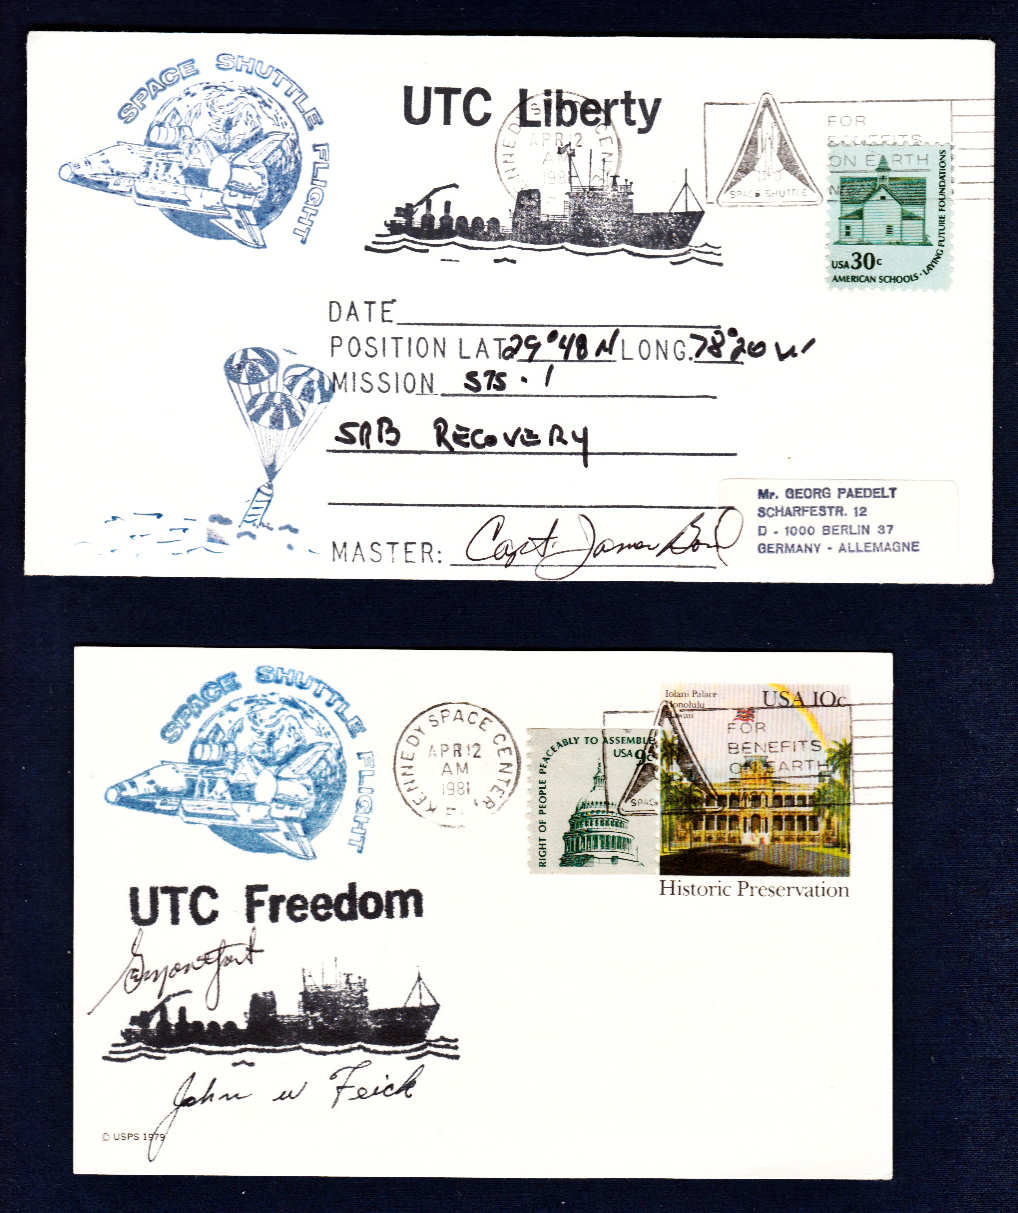 Space Cover 351: SRB Retrieval Ship Covers - collectSPACE